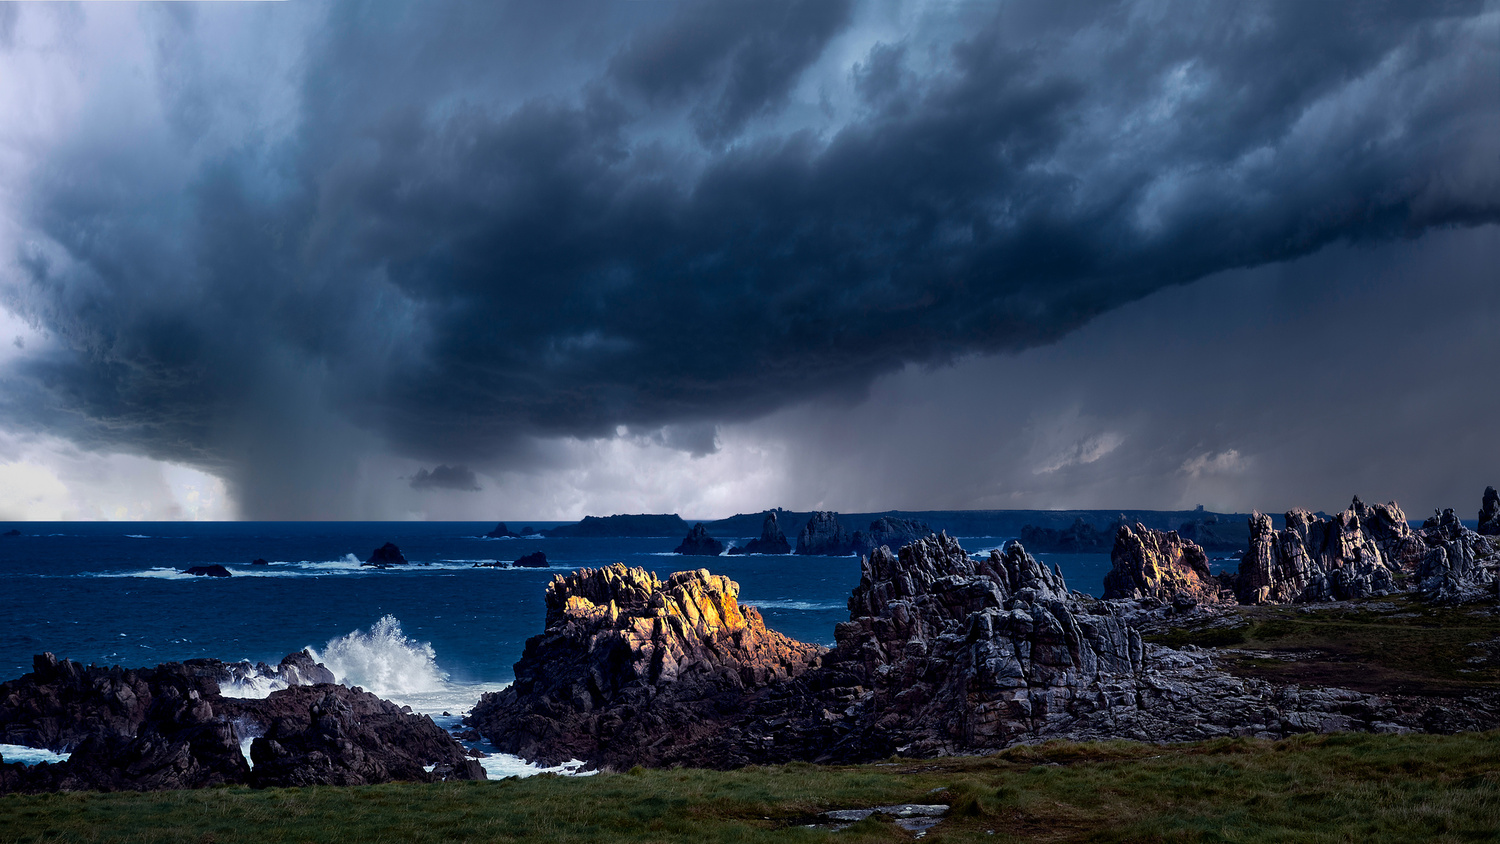 After the Storm by denis lomme